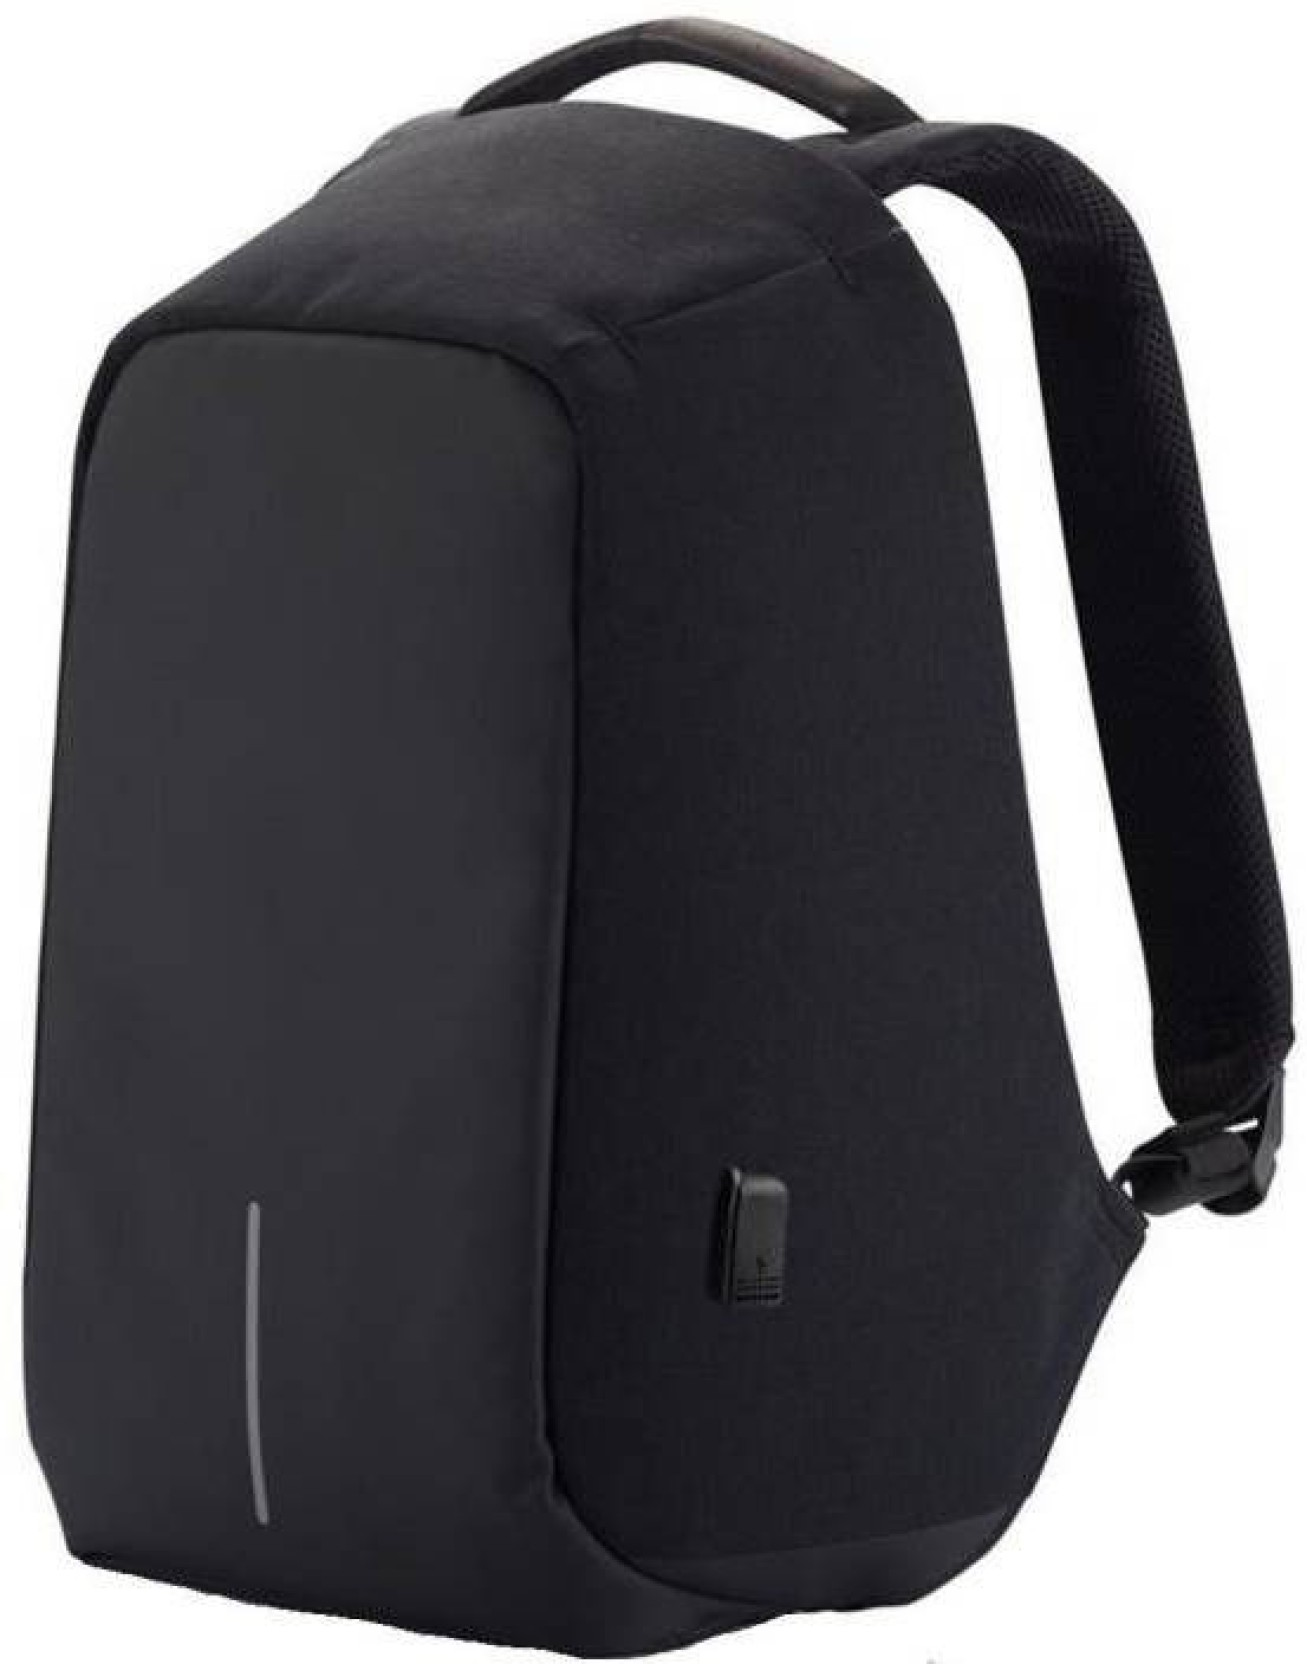 eee41f76d8 AllExtreme Anti theft Bag with USB Charging Port Waterproof Business Laptop  Anti theft Back pack College Bagpack Travel Hiking Organizer Bag for  Student